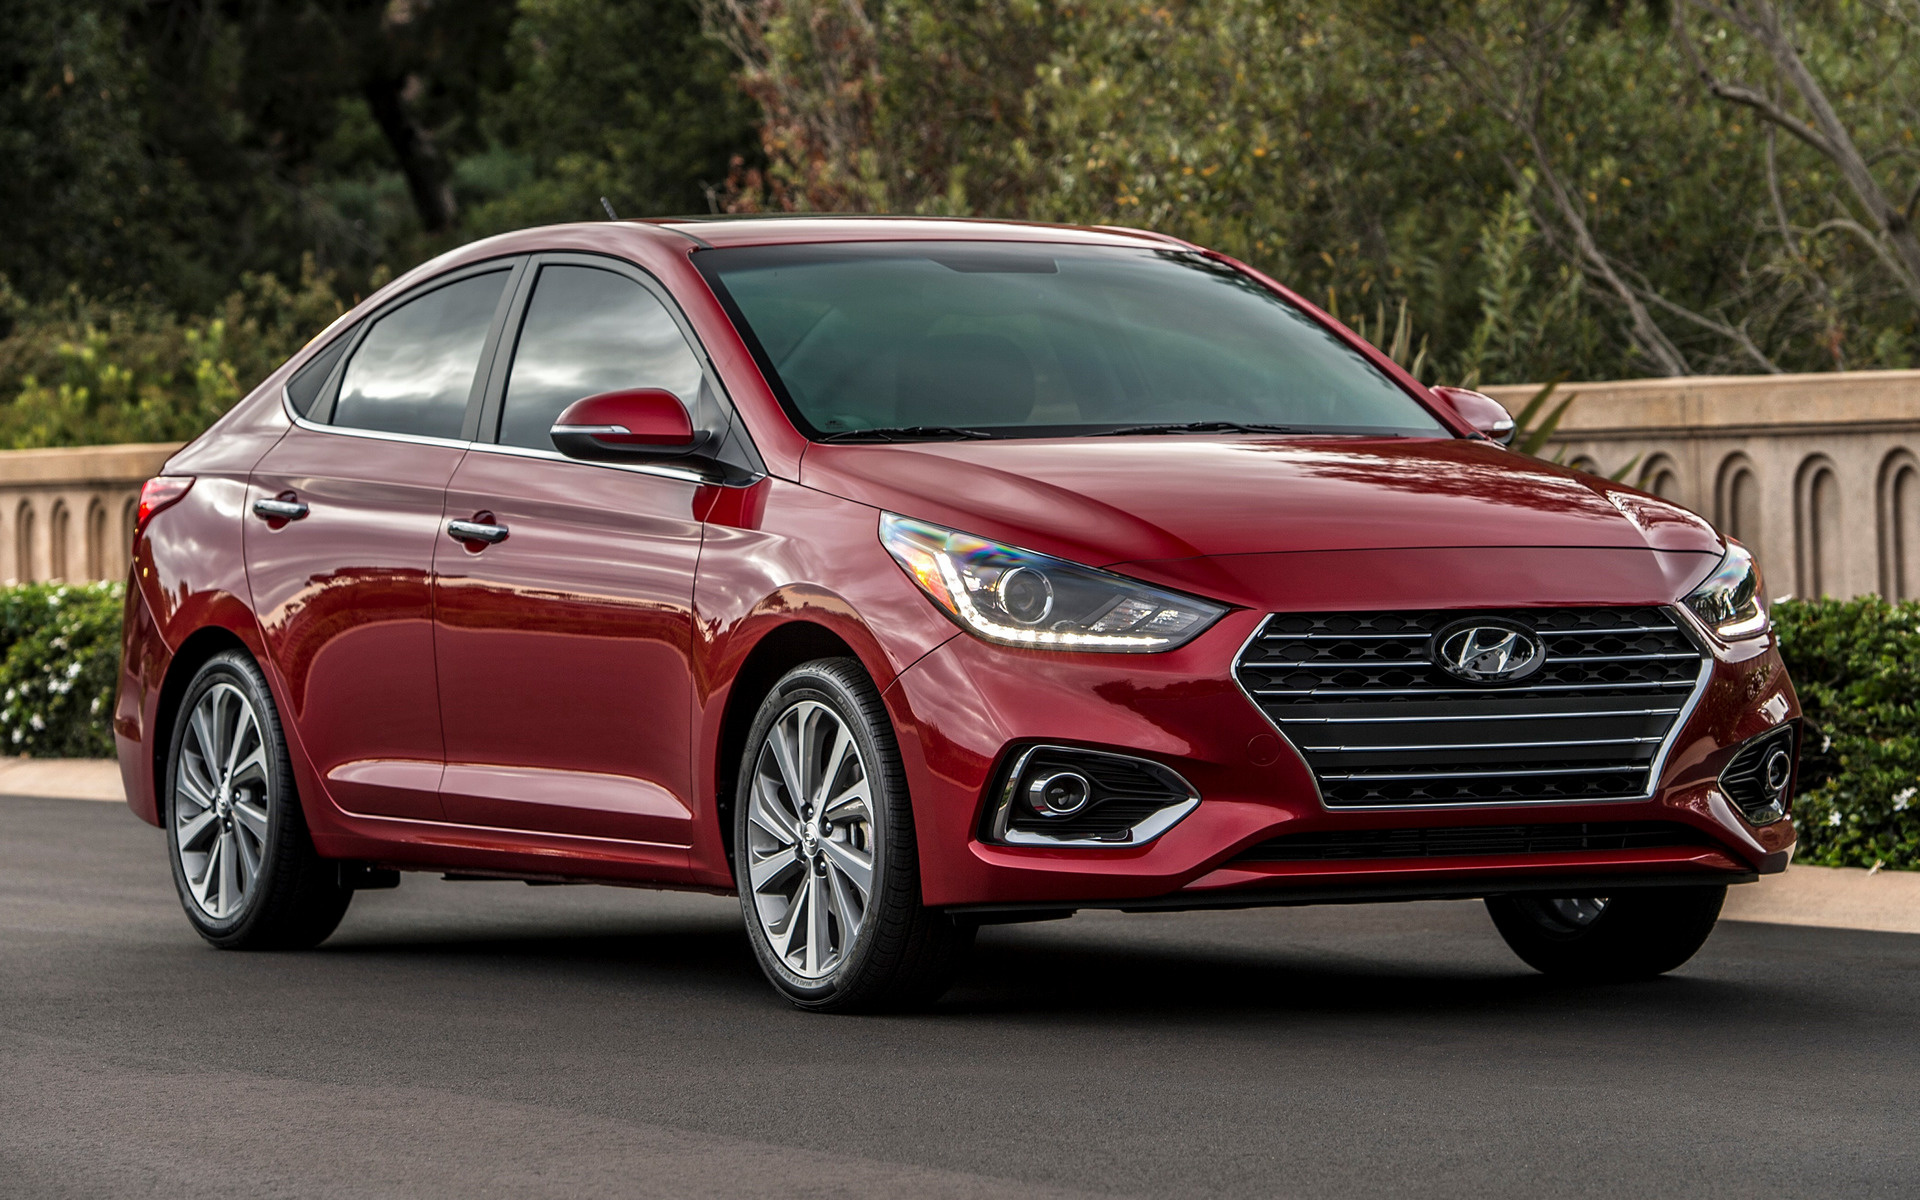 2018 Hyundai Accent US   Wallpapers and HD Images Car Pixel 1920x1200